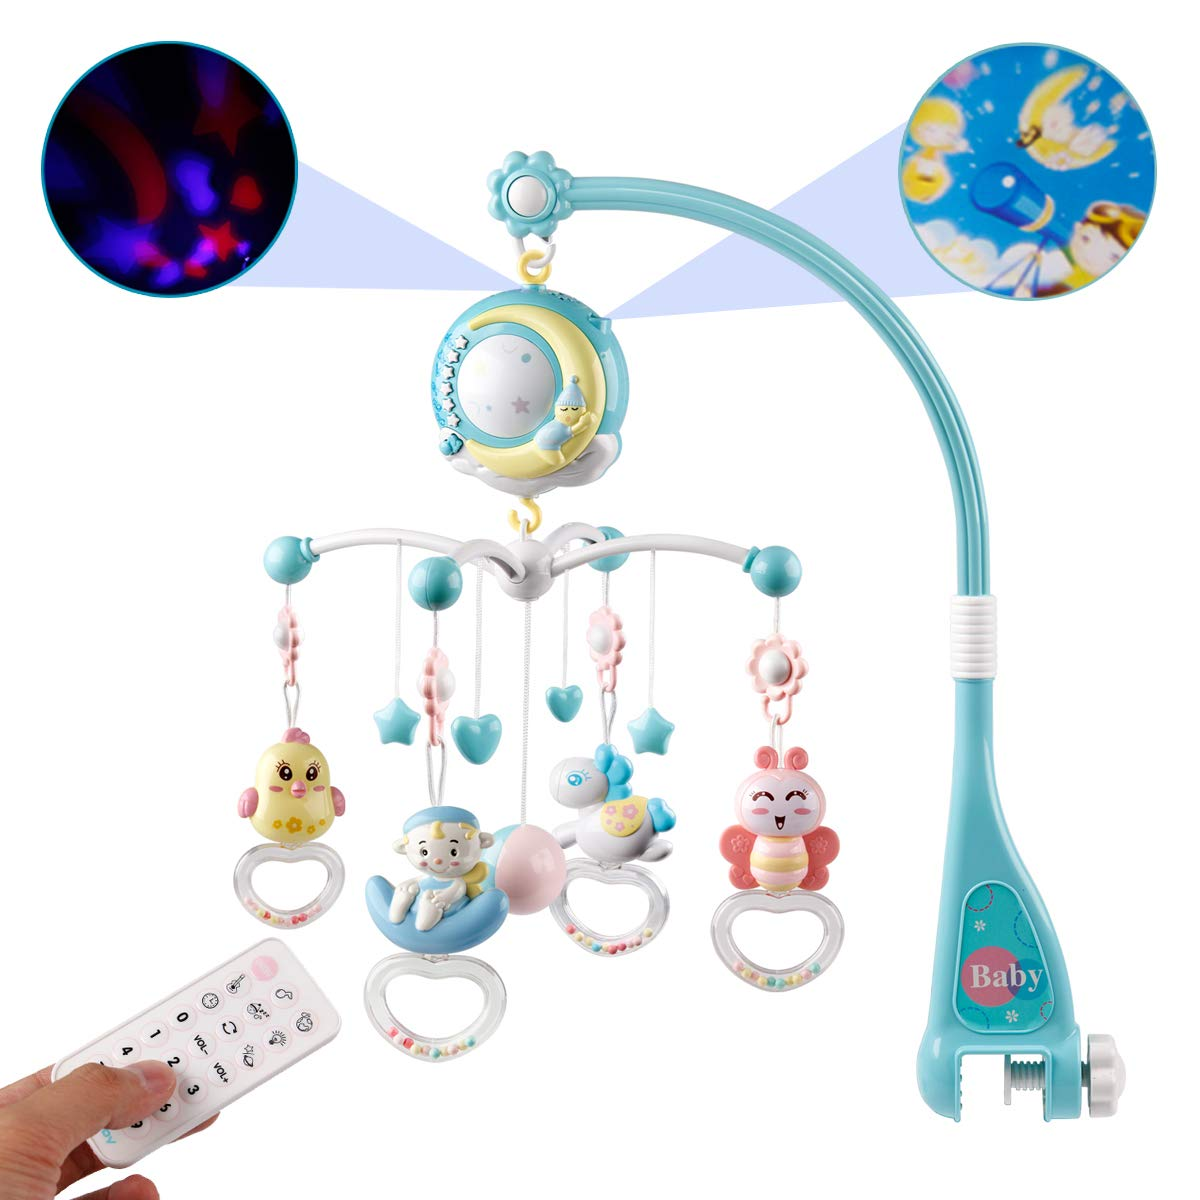 Mini Tudou Baby Musical Mobile Crib with Music & Lights, Timing Function, Projection, Take-Along Rattle & Music Box for Babies Boy Girl Toddles Sleep